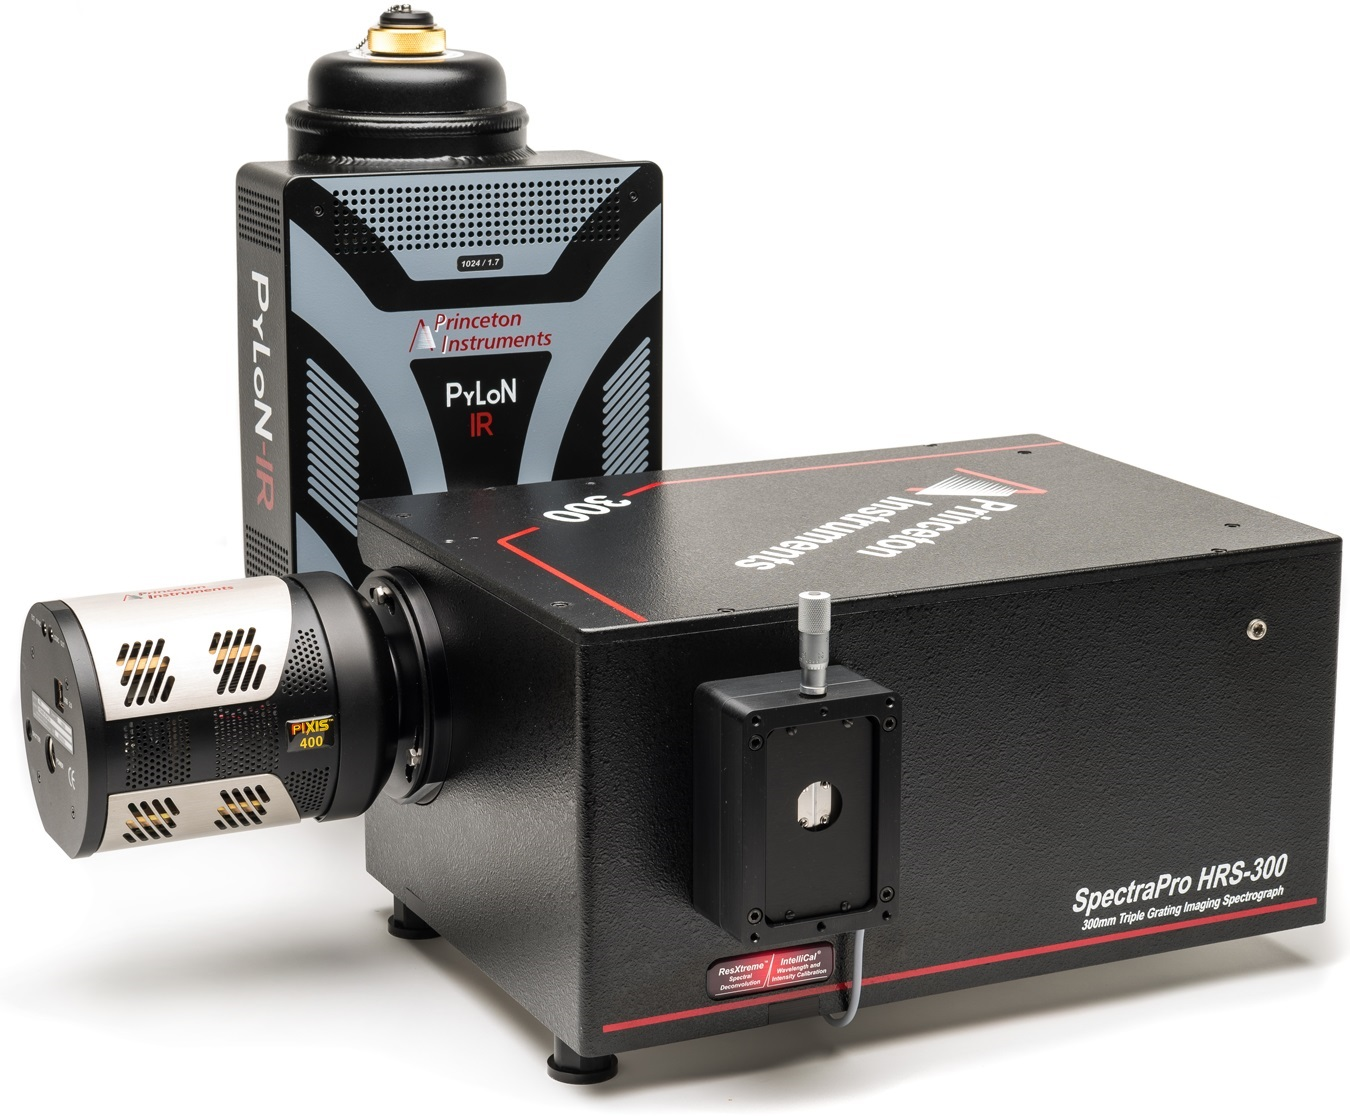 Versatile SpectraPro HRS-300 spectrograph shown with Princeton Instruments' PyLoN-IR InGaAs and PIXIS CCD cameras.